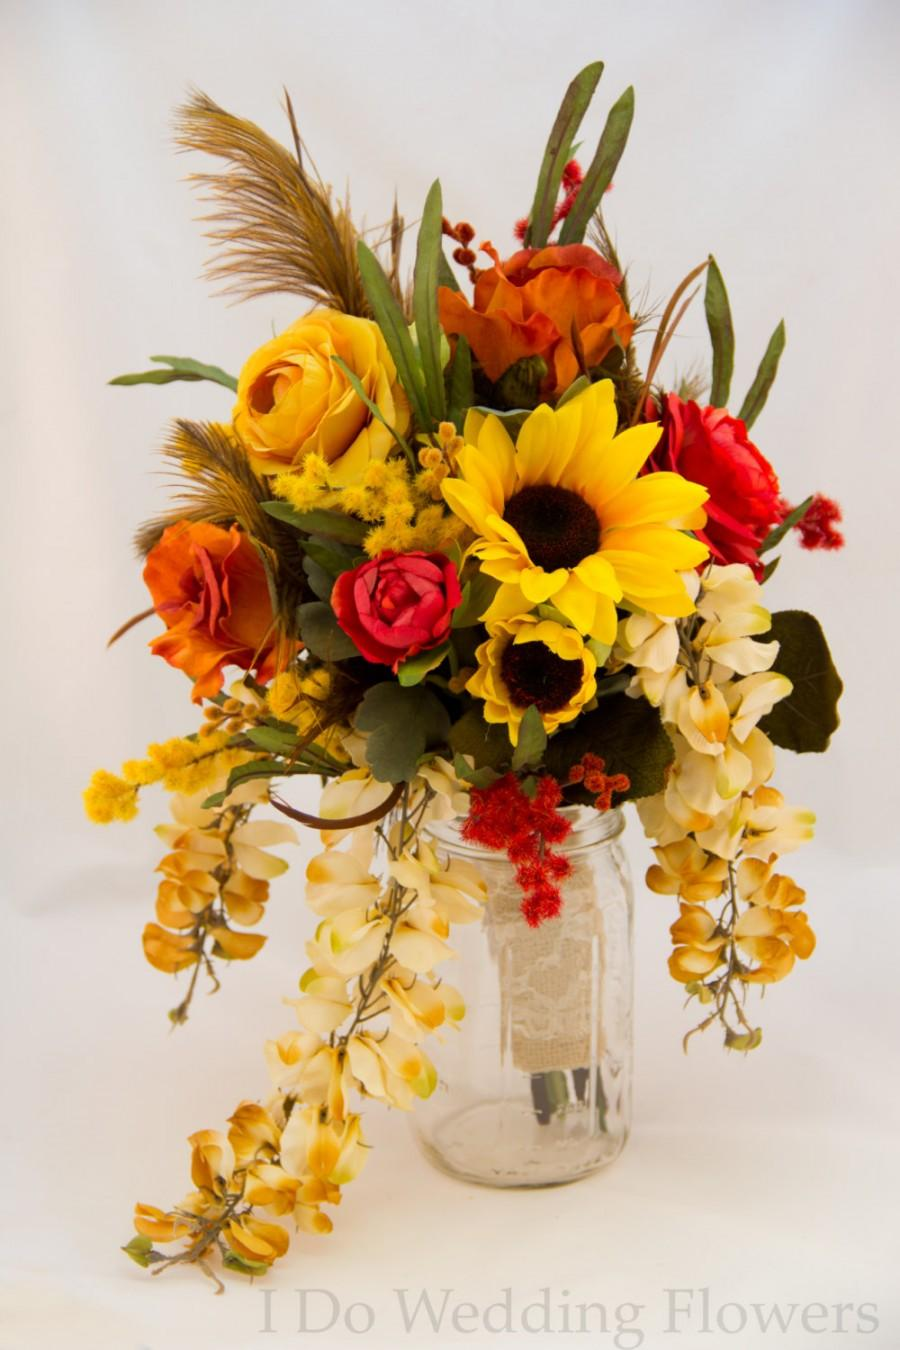 Hochzeit - Bridal bouquet, Country wedding, Sunflower and roses with burlap, Rustic Fall wedding bouquet, Ready to ship or can be made to order